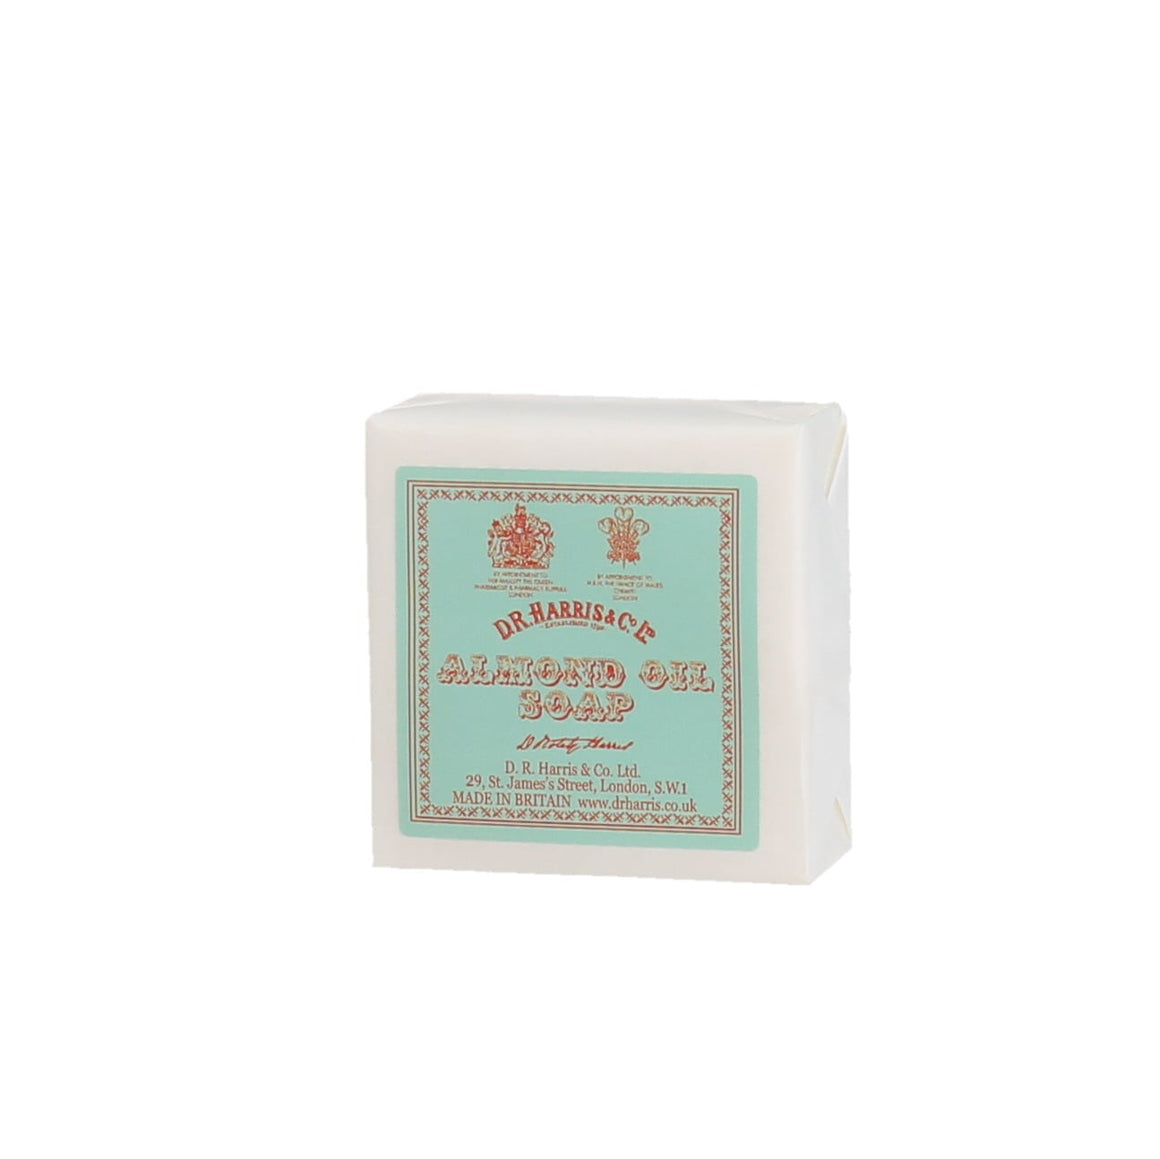 ALMOND OIL GUEST SOAP 40g